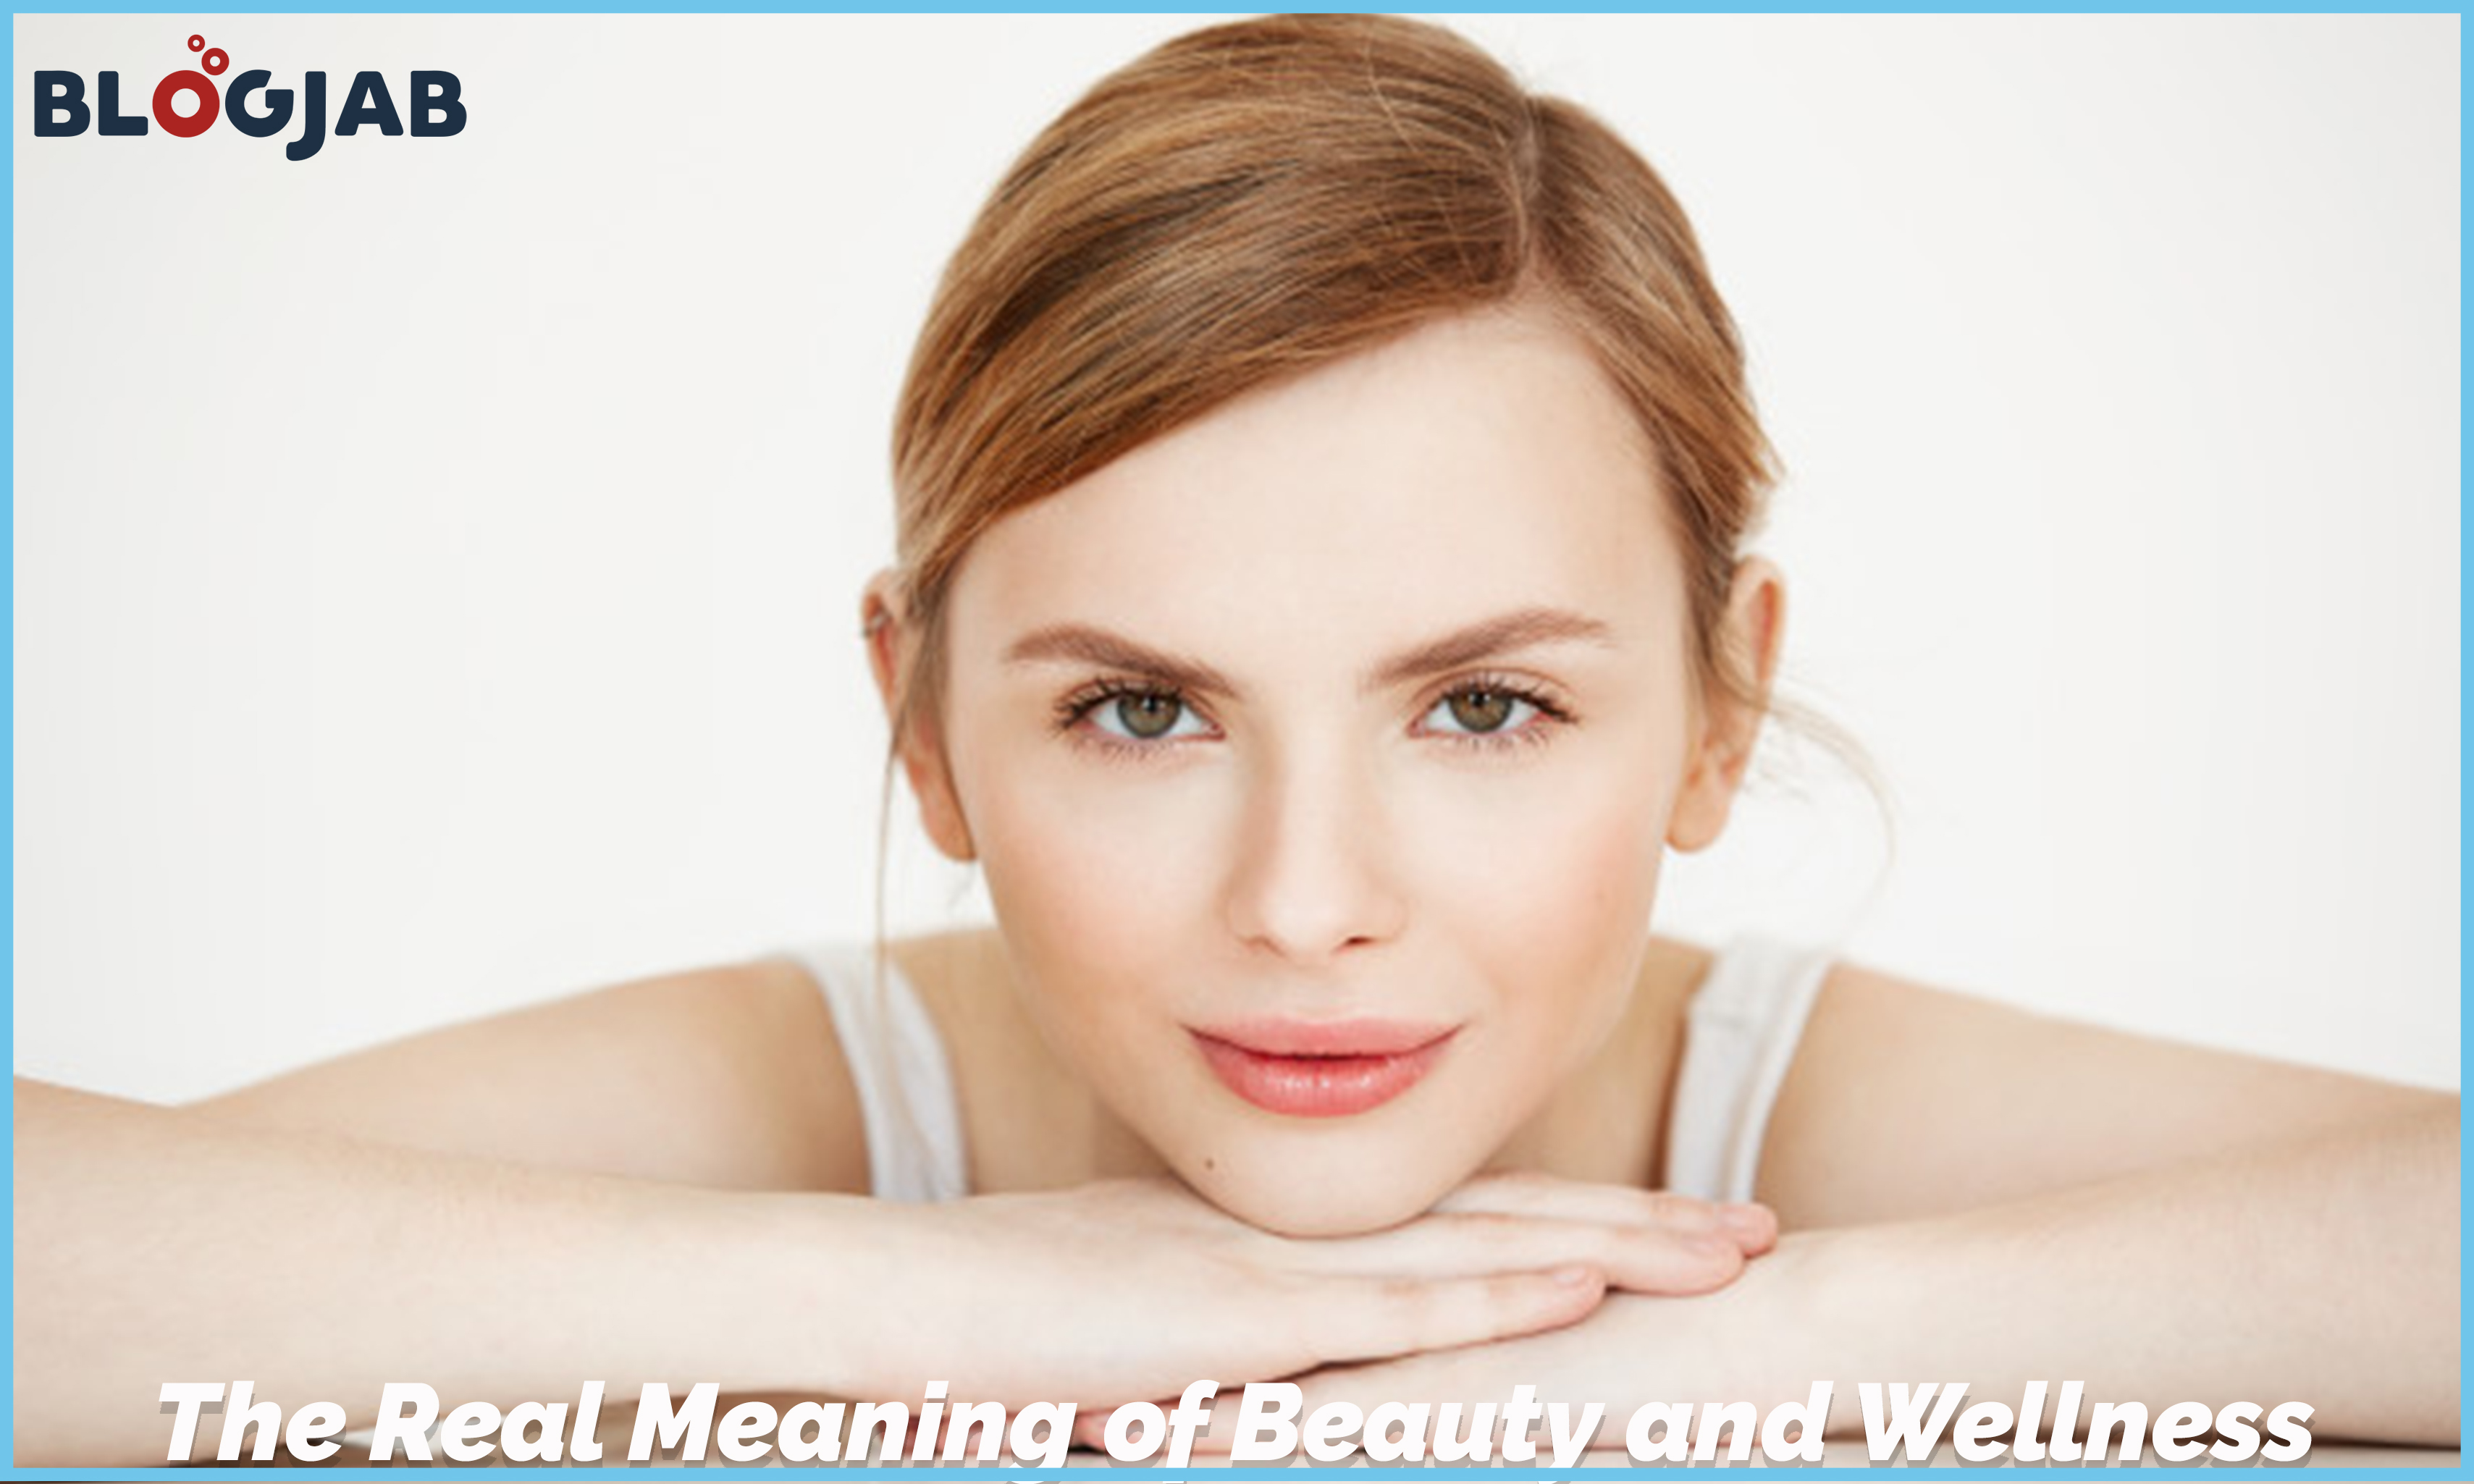 The Real Meaning of Beauty and Wellness